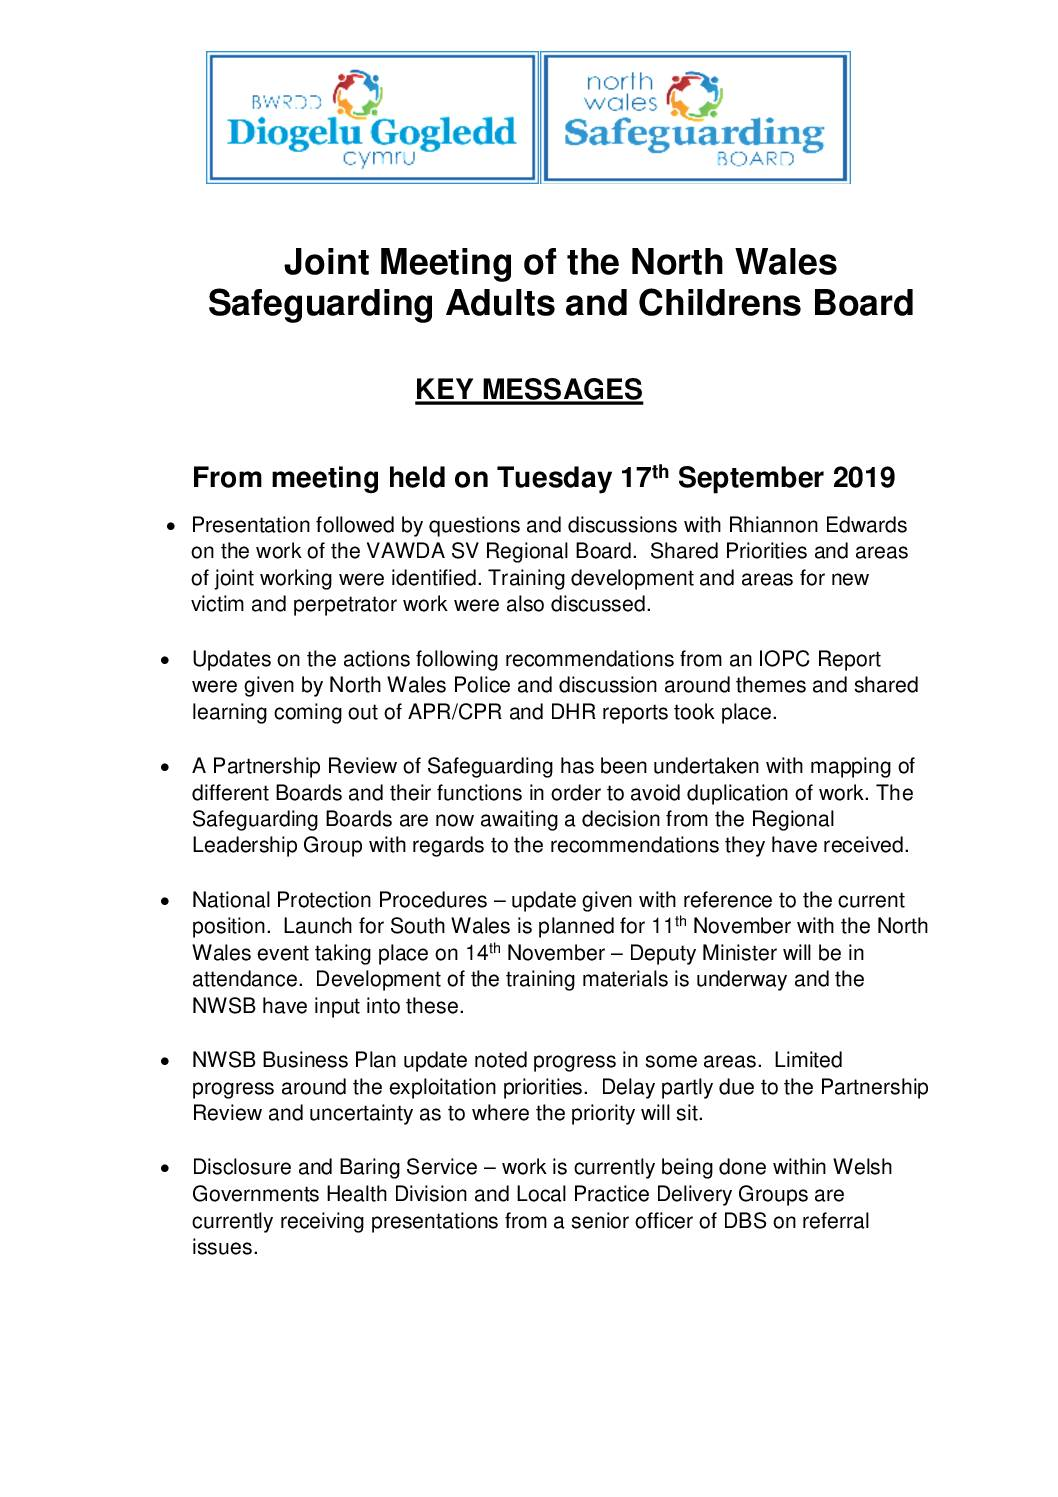 Key Messages NWSB Joint Meeting September 19